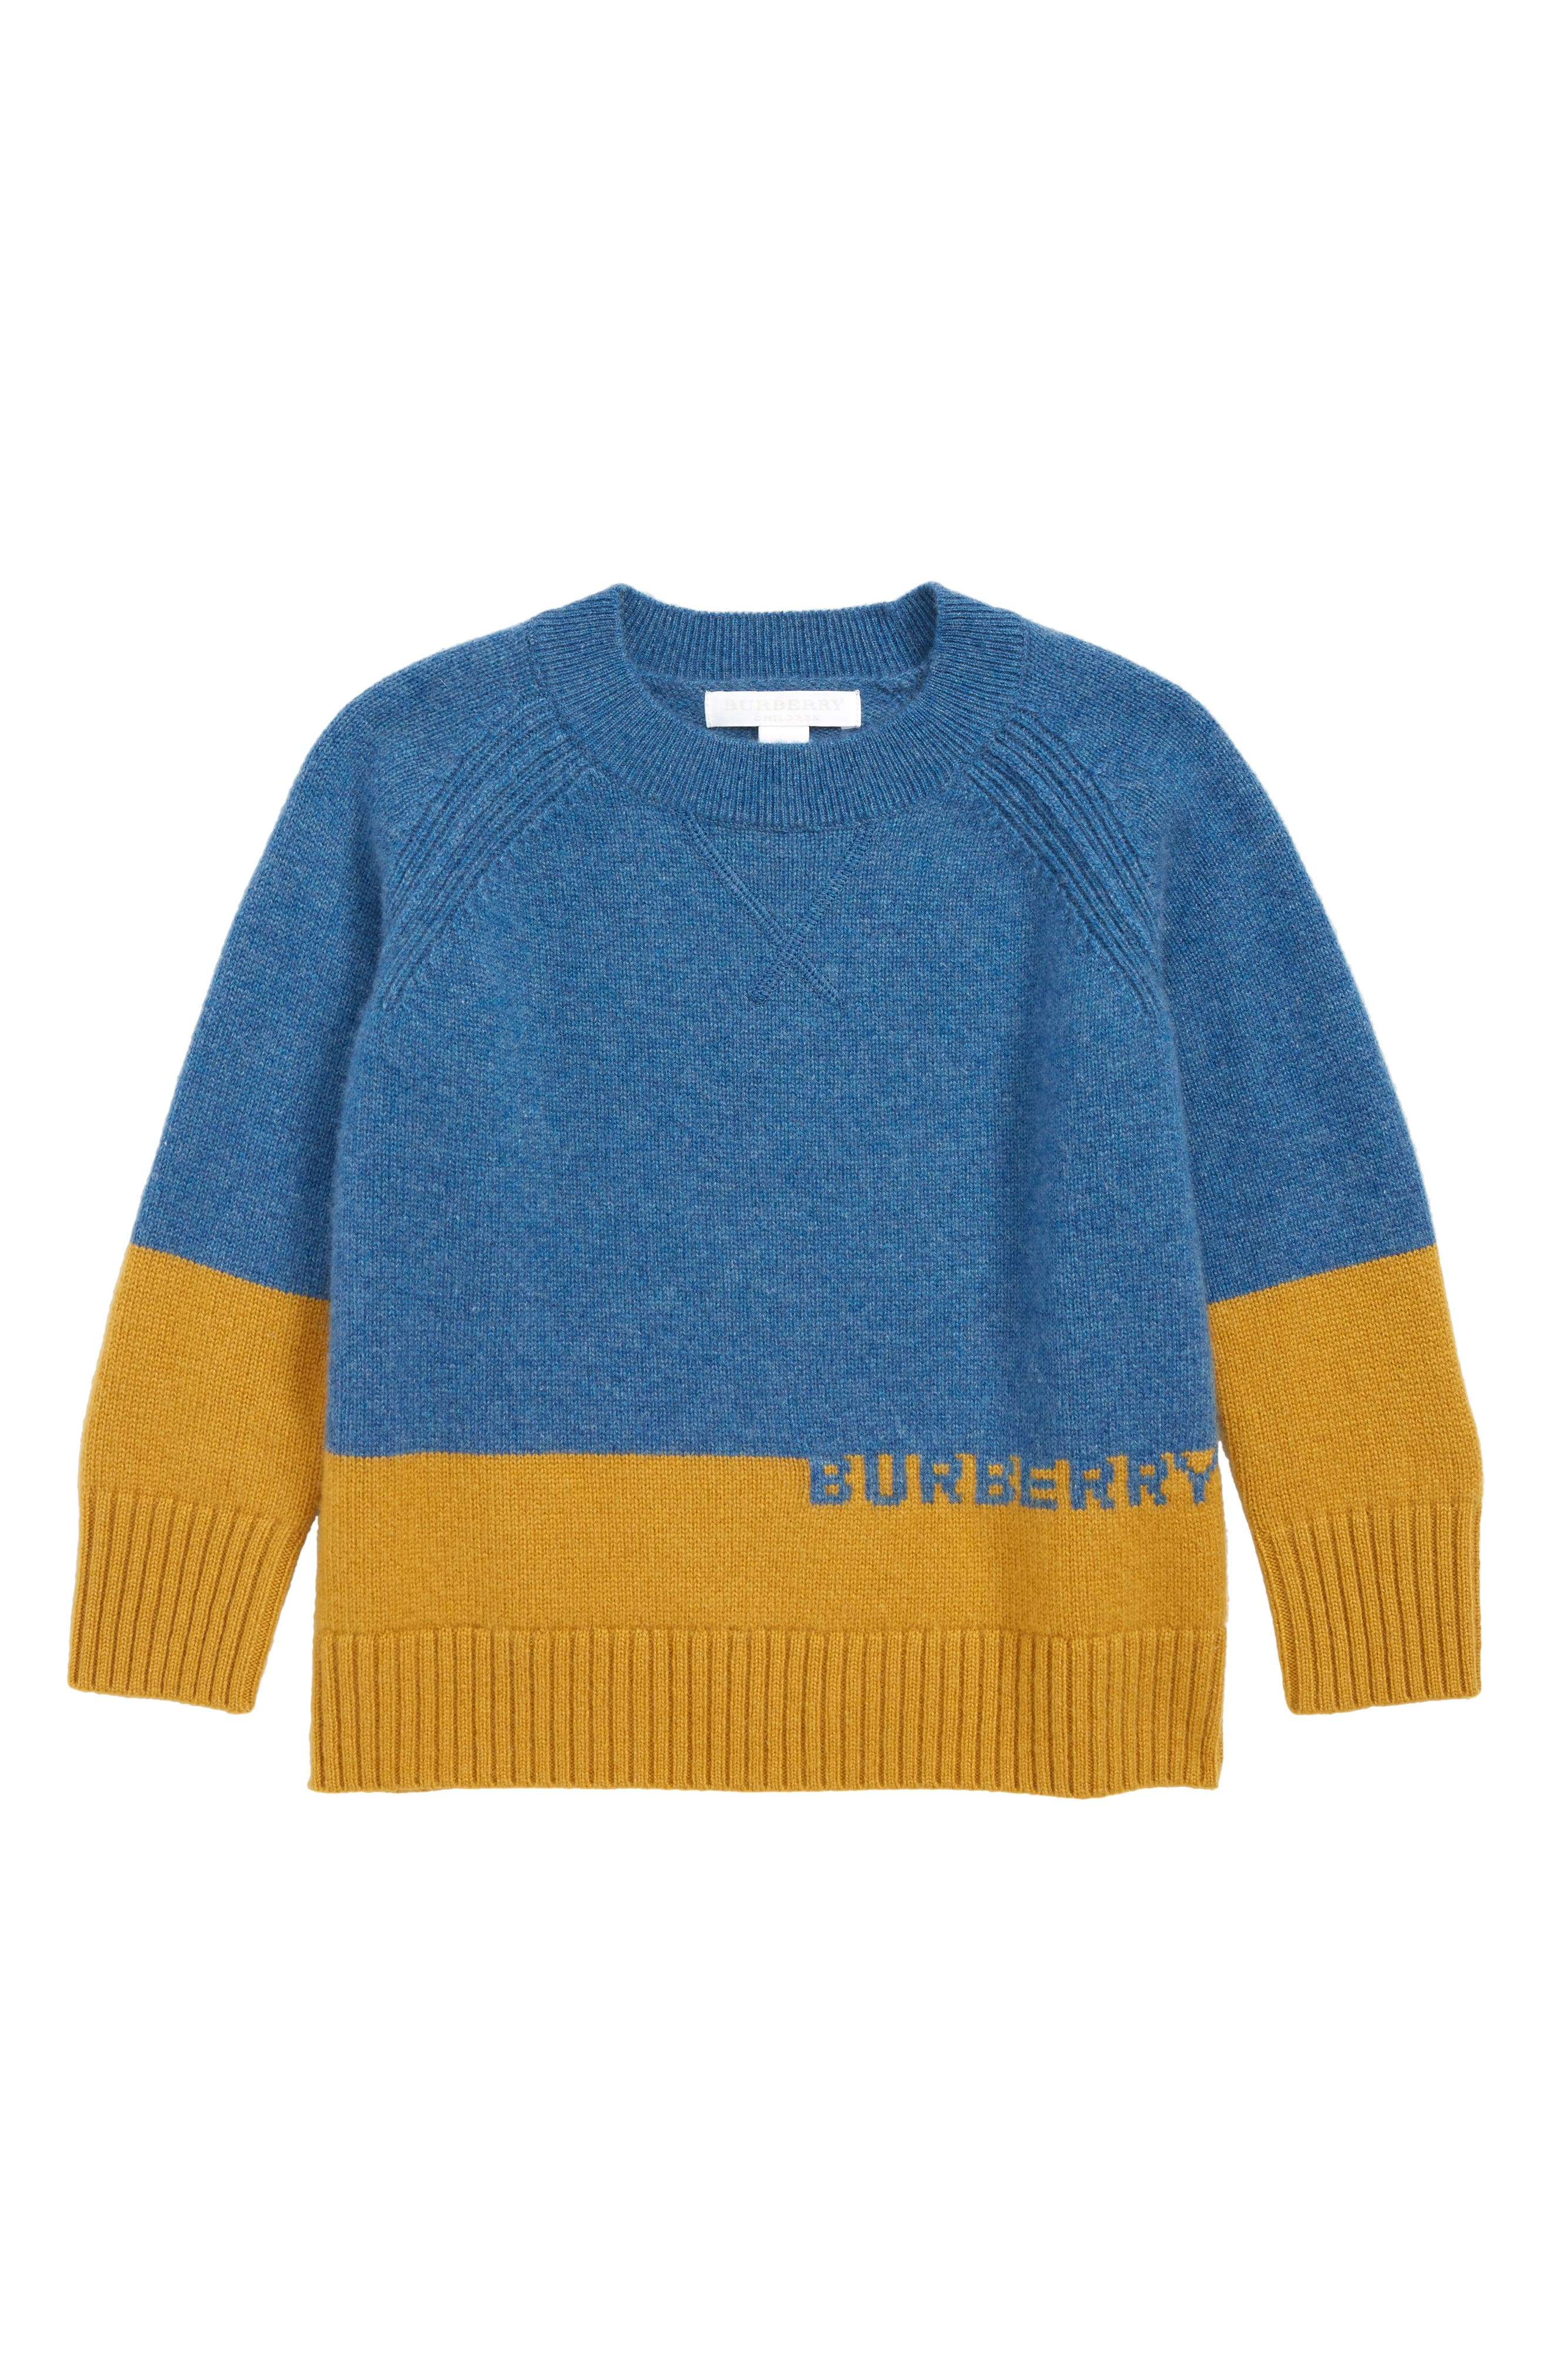 BURBERRY, Alister Cashmere Sweater, Main thumbnail 1, color, 400